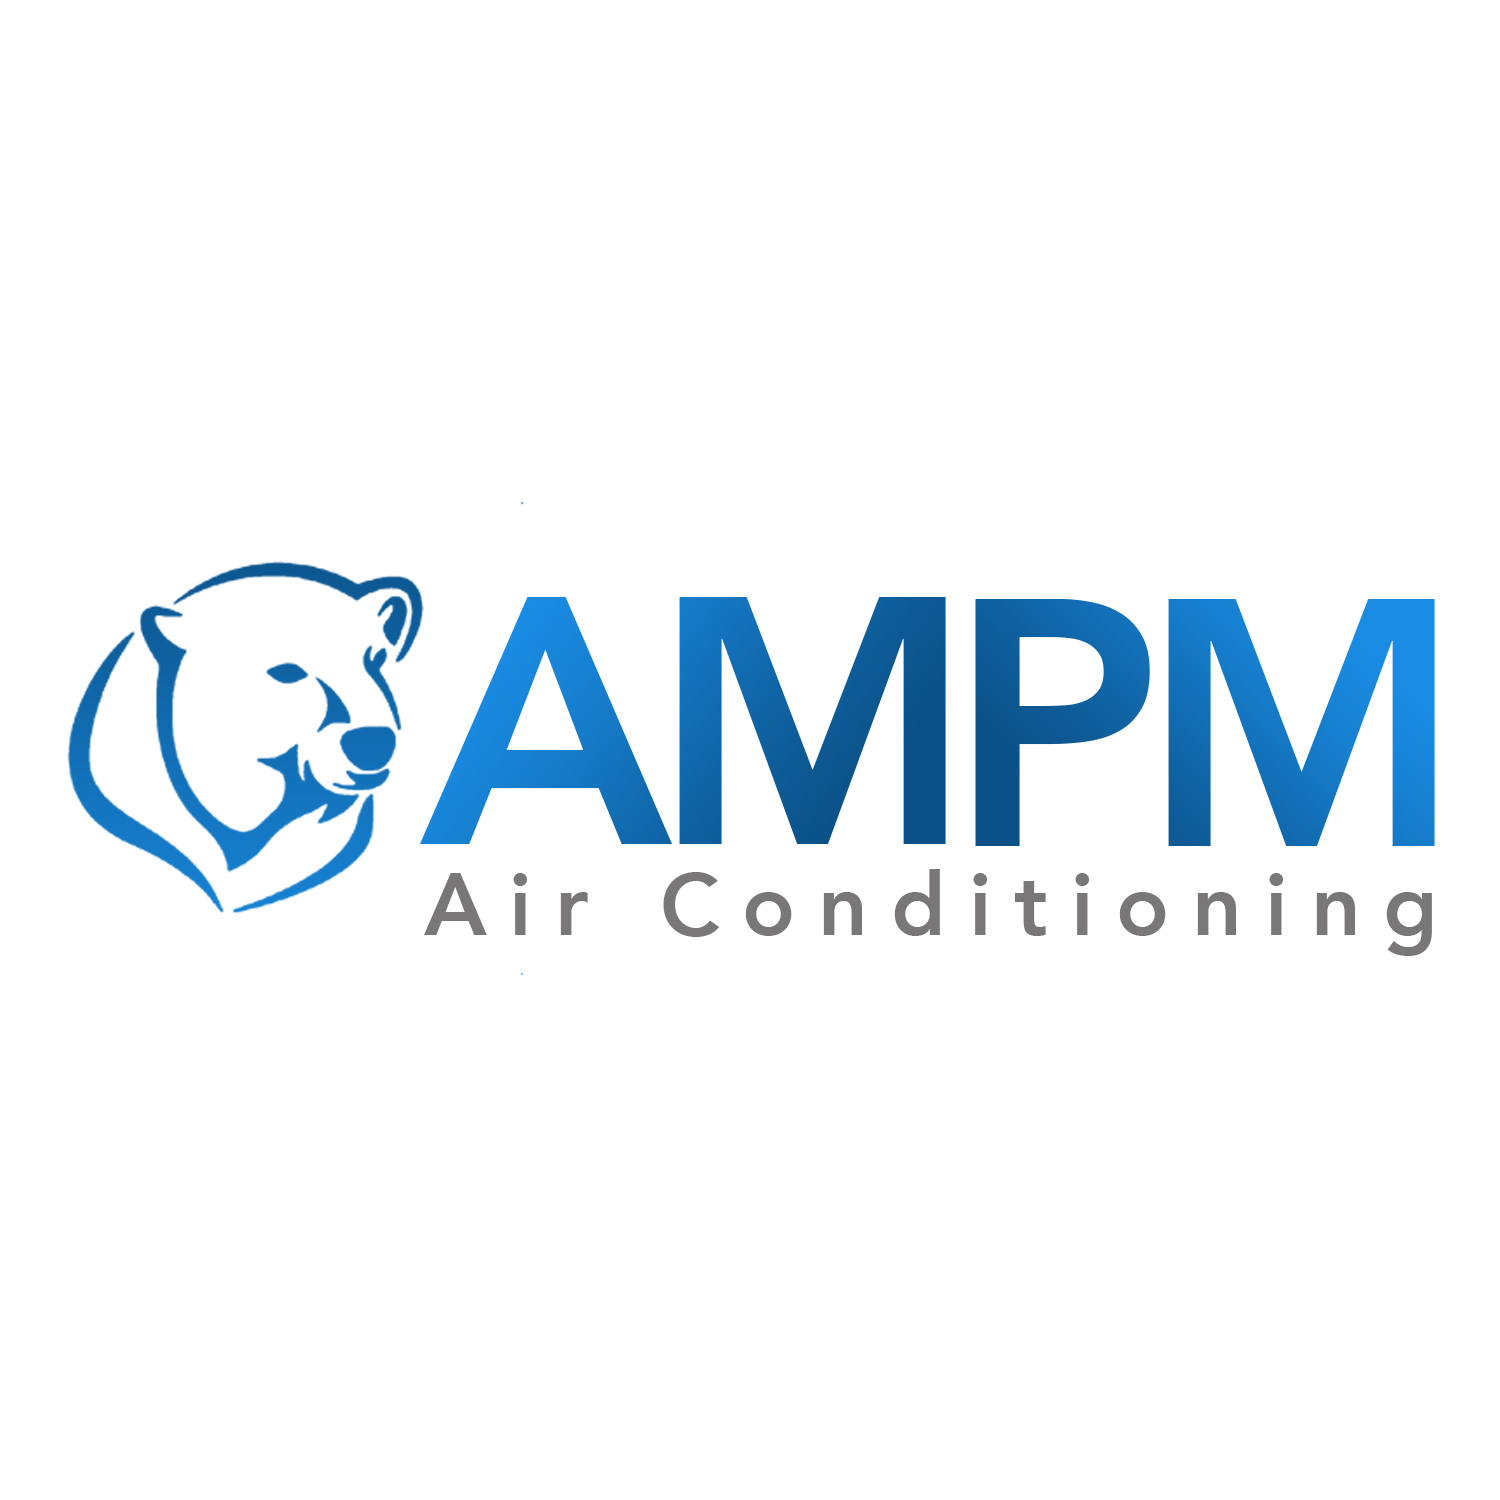 ampm air conditioning llc coupons near me in peoria. Black Bedroom Furniture Sets. Home Design Ideas